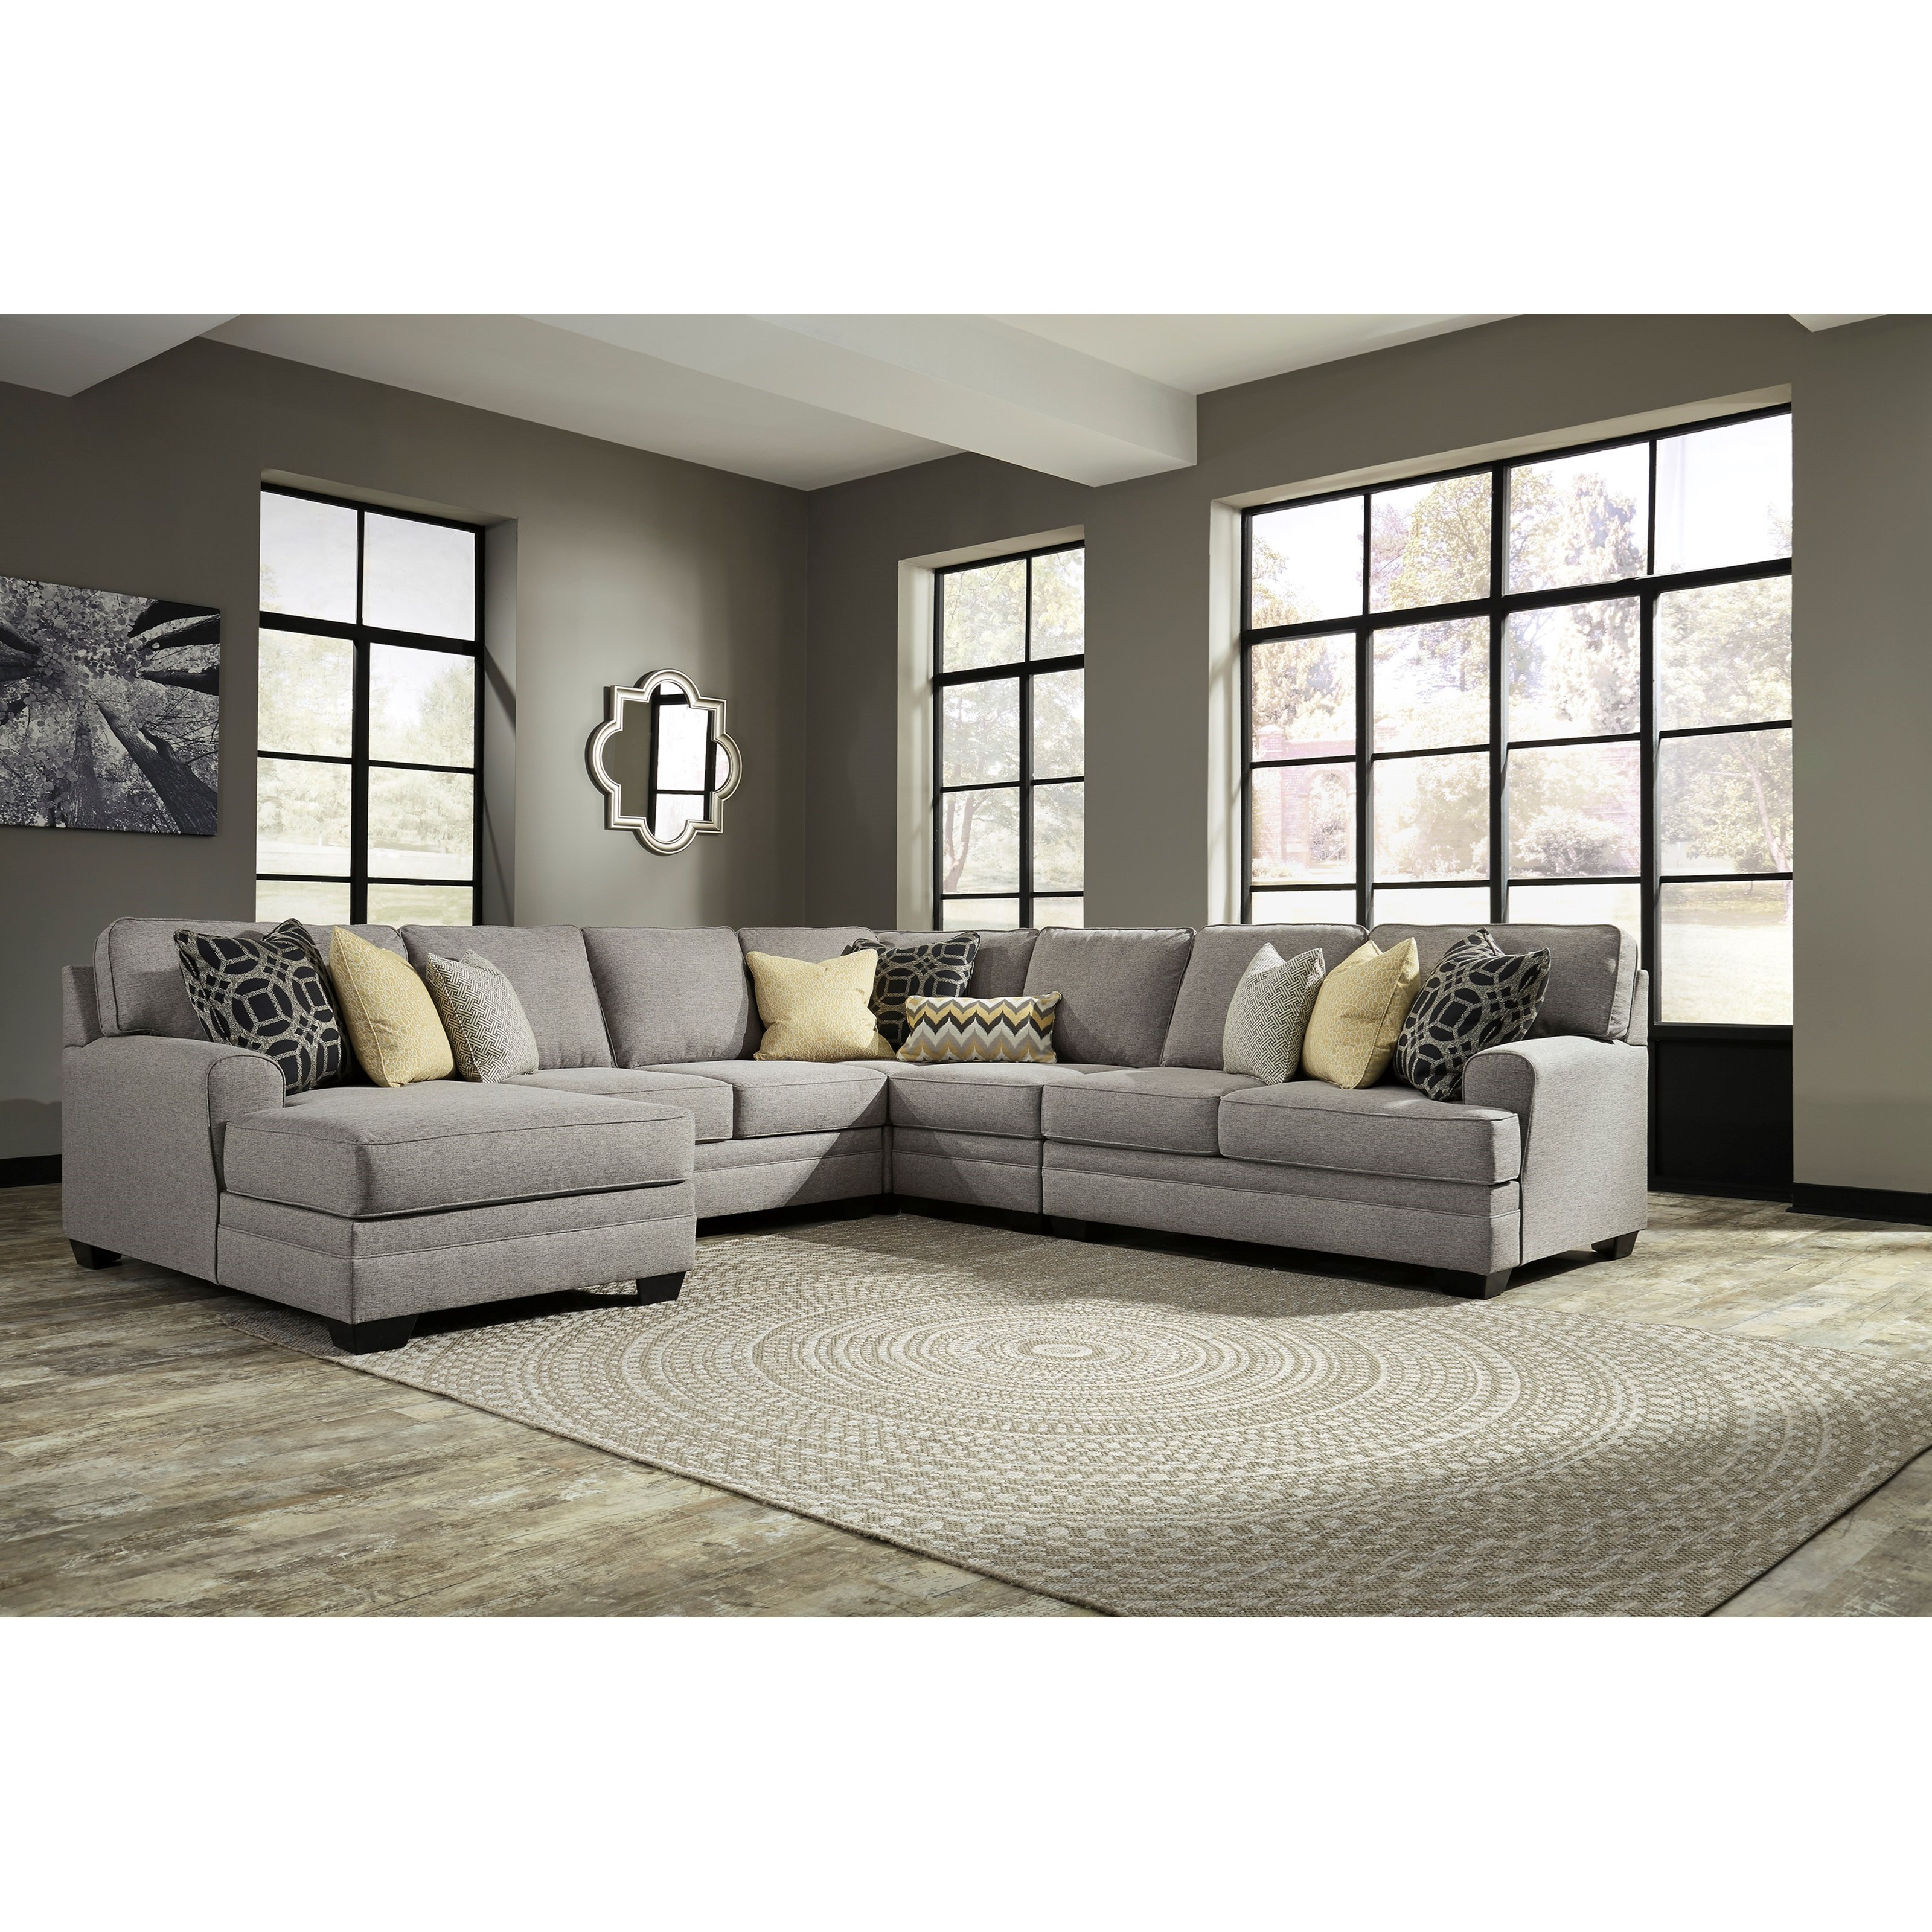 Benchcraft cresson contemporary 5 piece sectional with for 5 piece sectional sofa with chaise